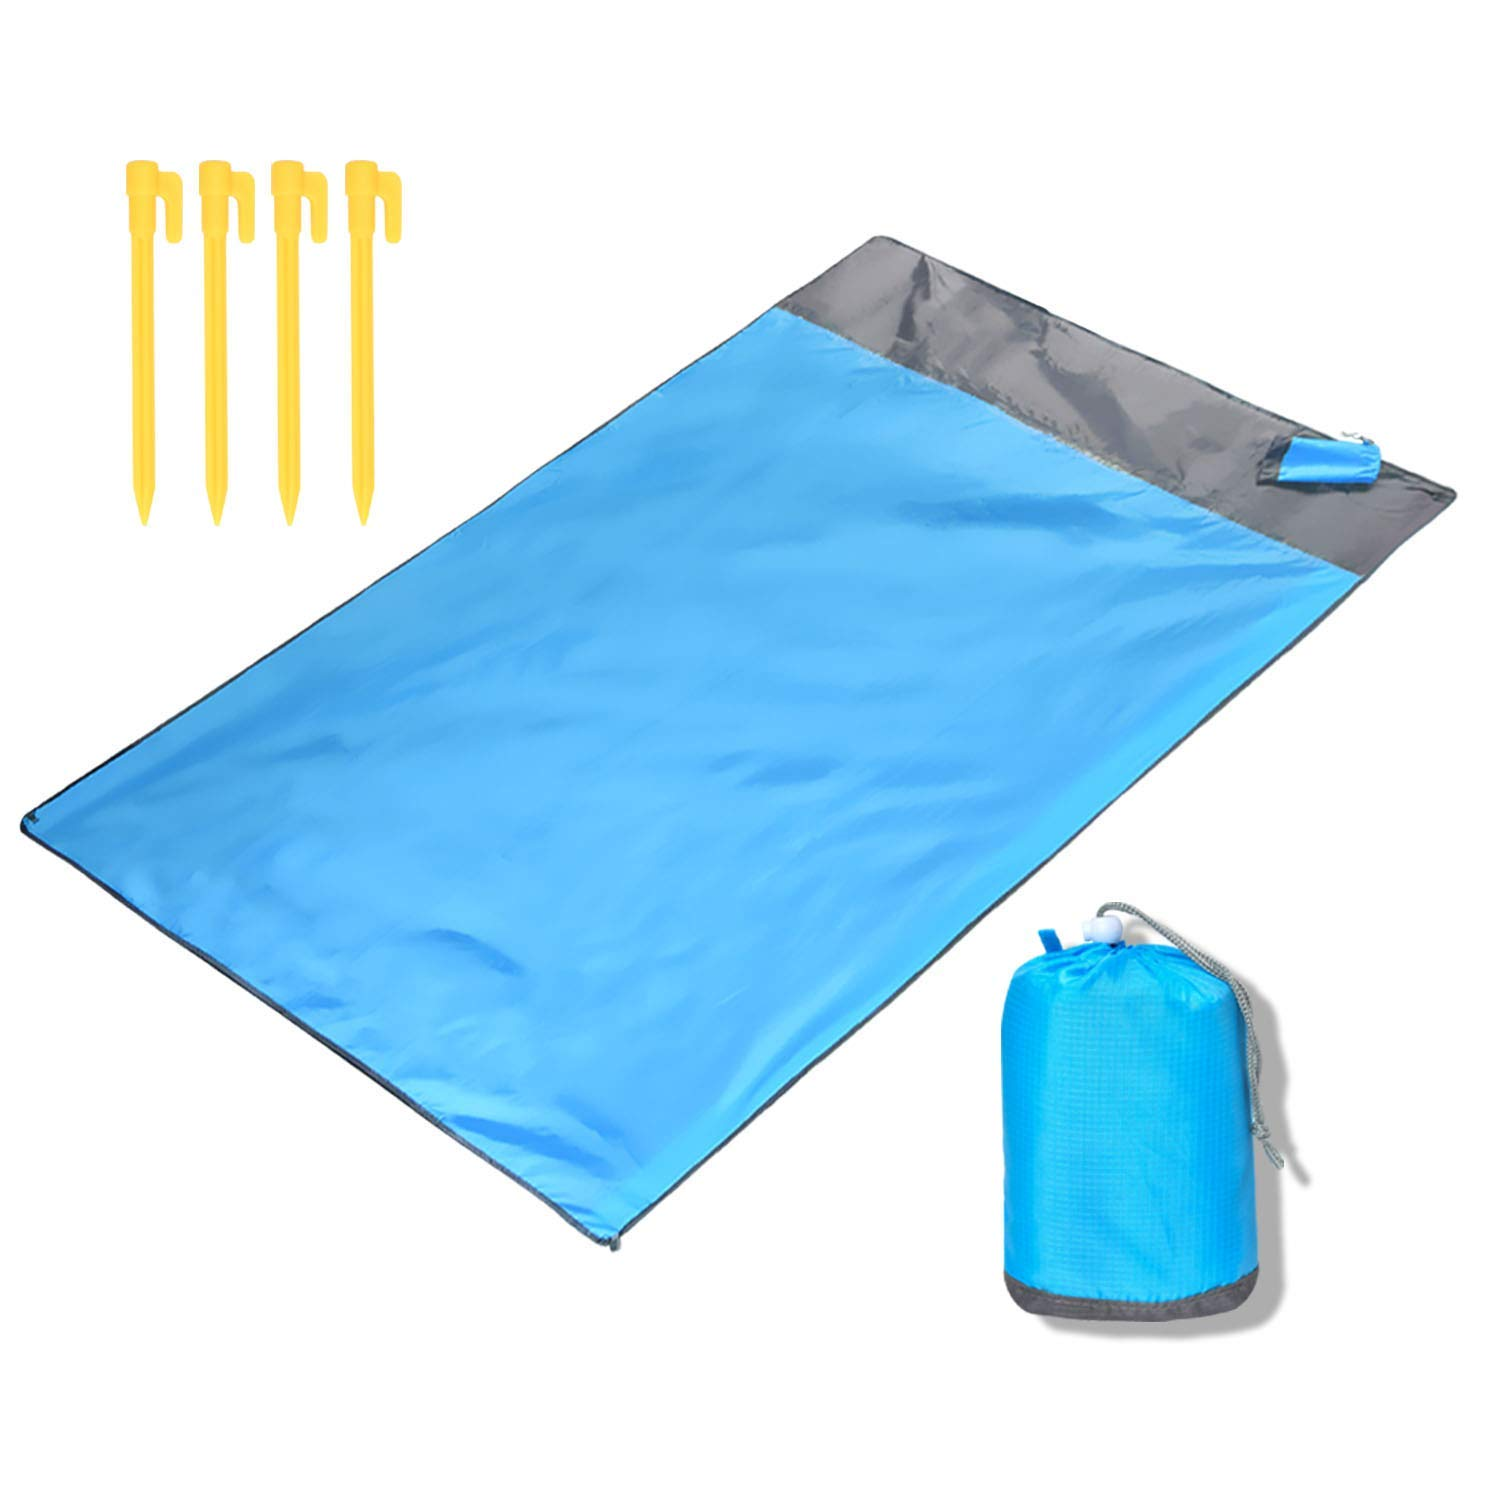 IUMÉ Waterproof Camping Tarp, Waterproof Picnic Mat, Multifunctional Tent Footprint with Drawstring Carrying Bag for Picnic, Hiking ... by IUMÉ